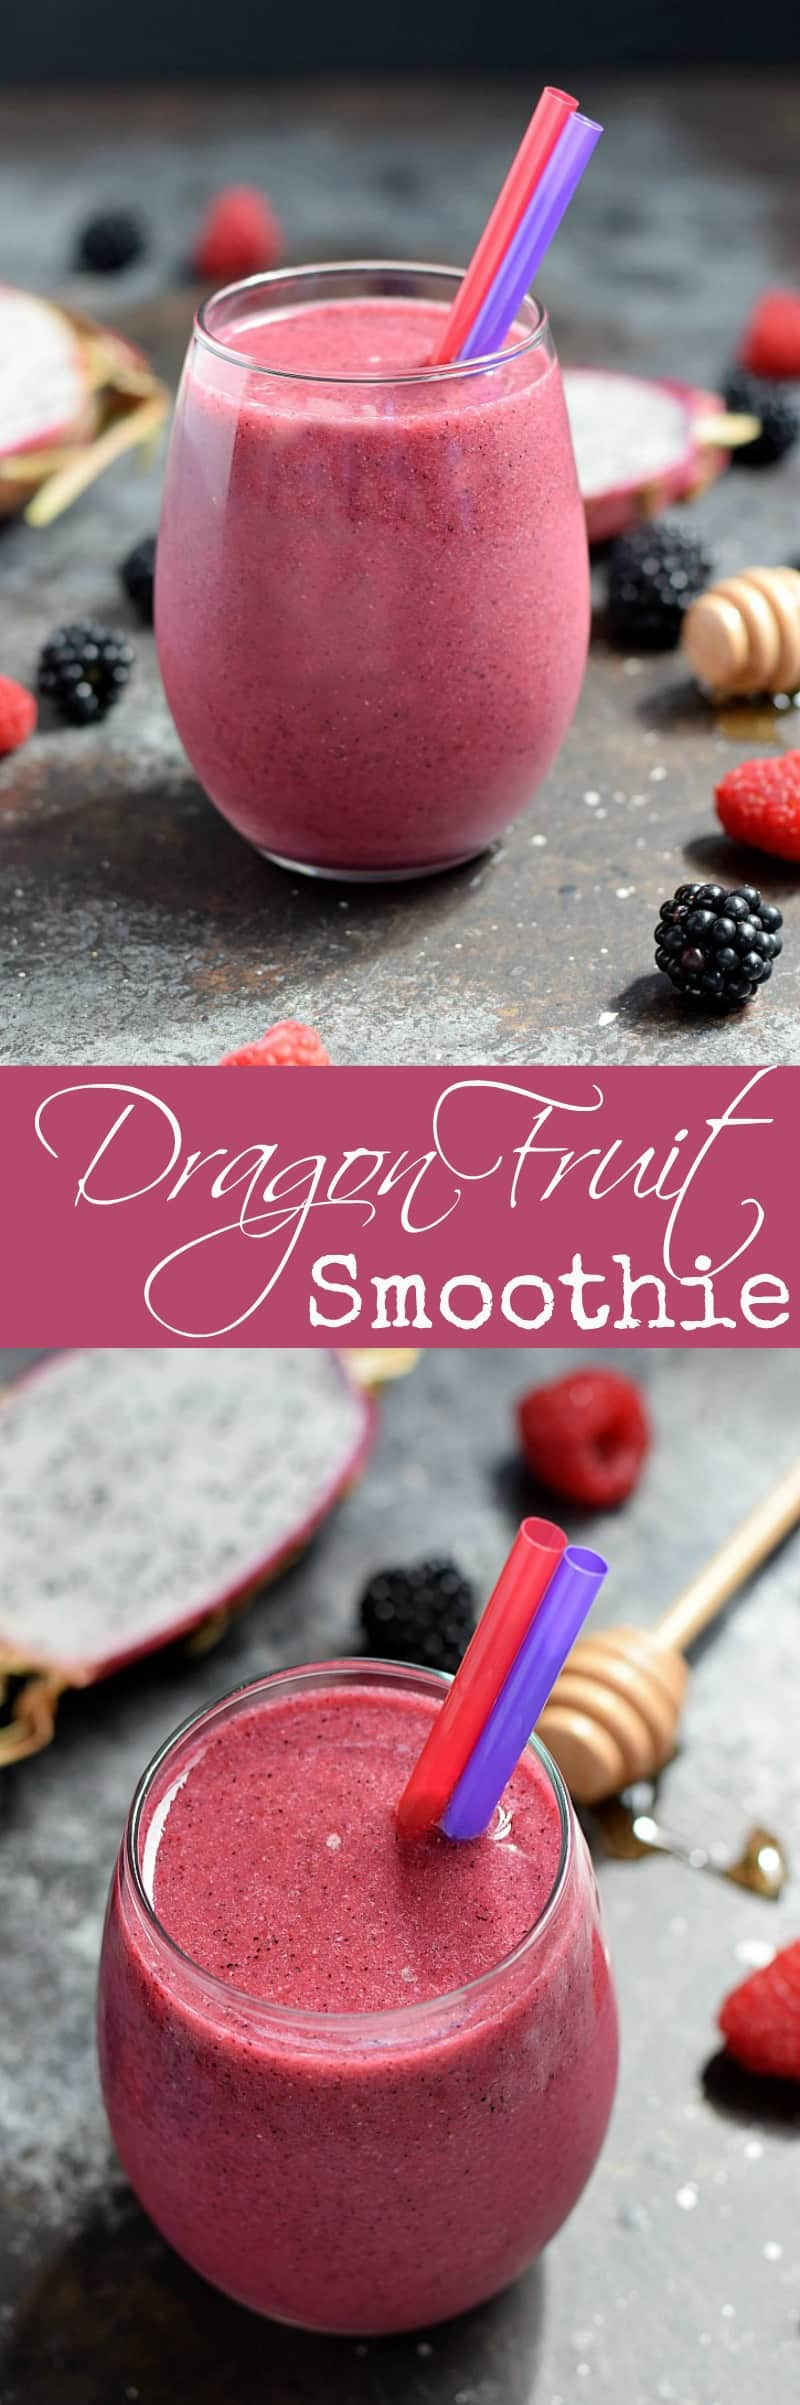 Change up your morning routine with a Dragon Fruit Smoothie loaded with berry flavor and vitamins to start your day off right | cookingwithcurls.com